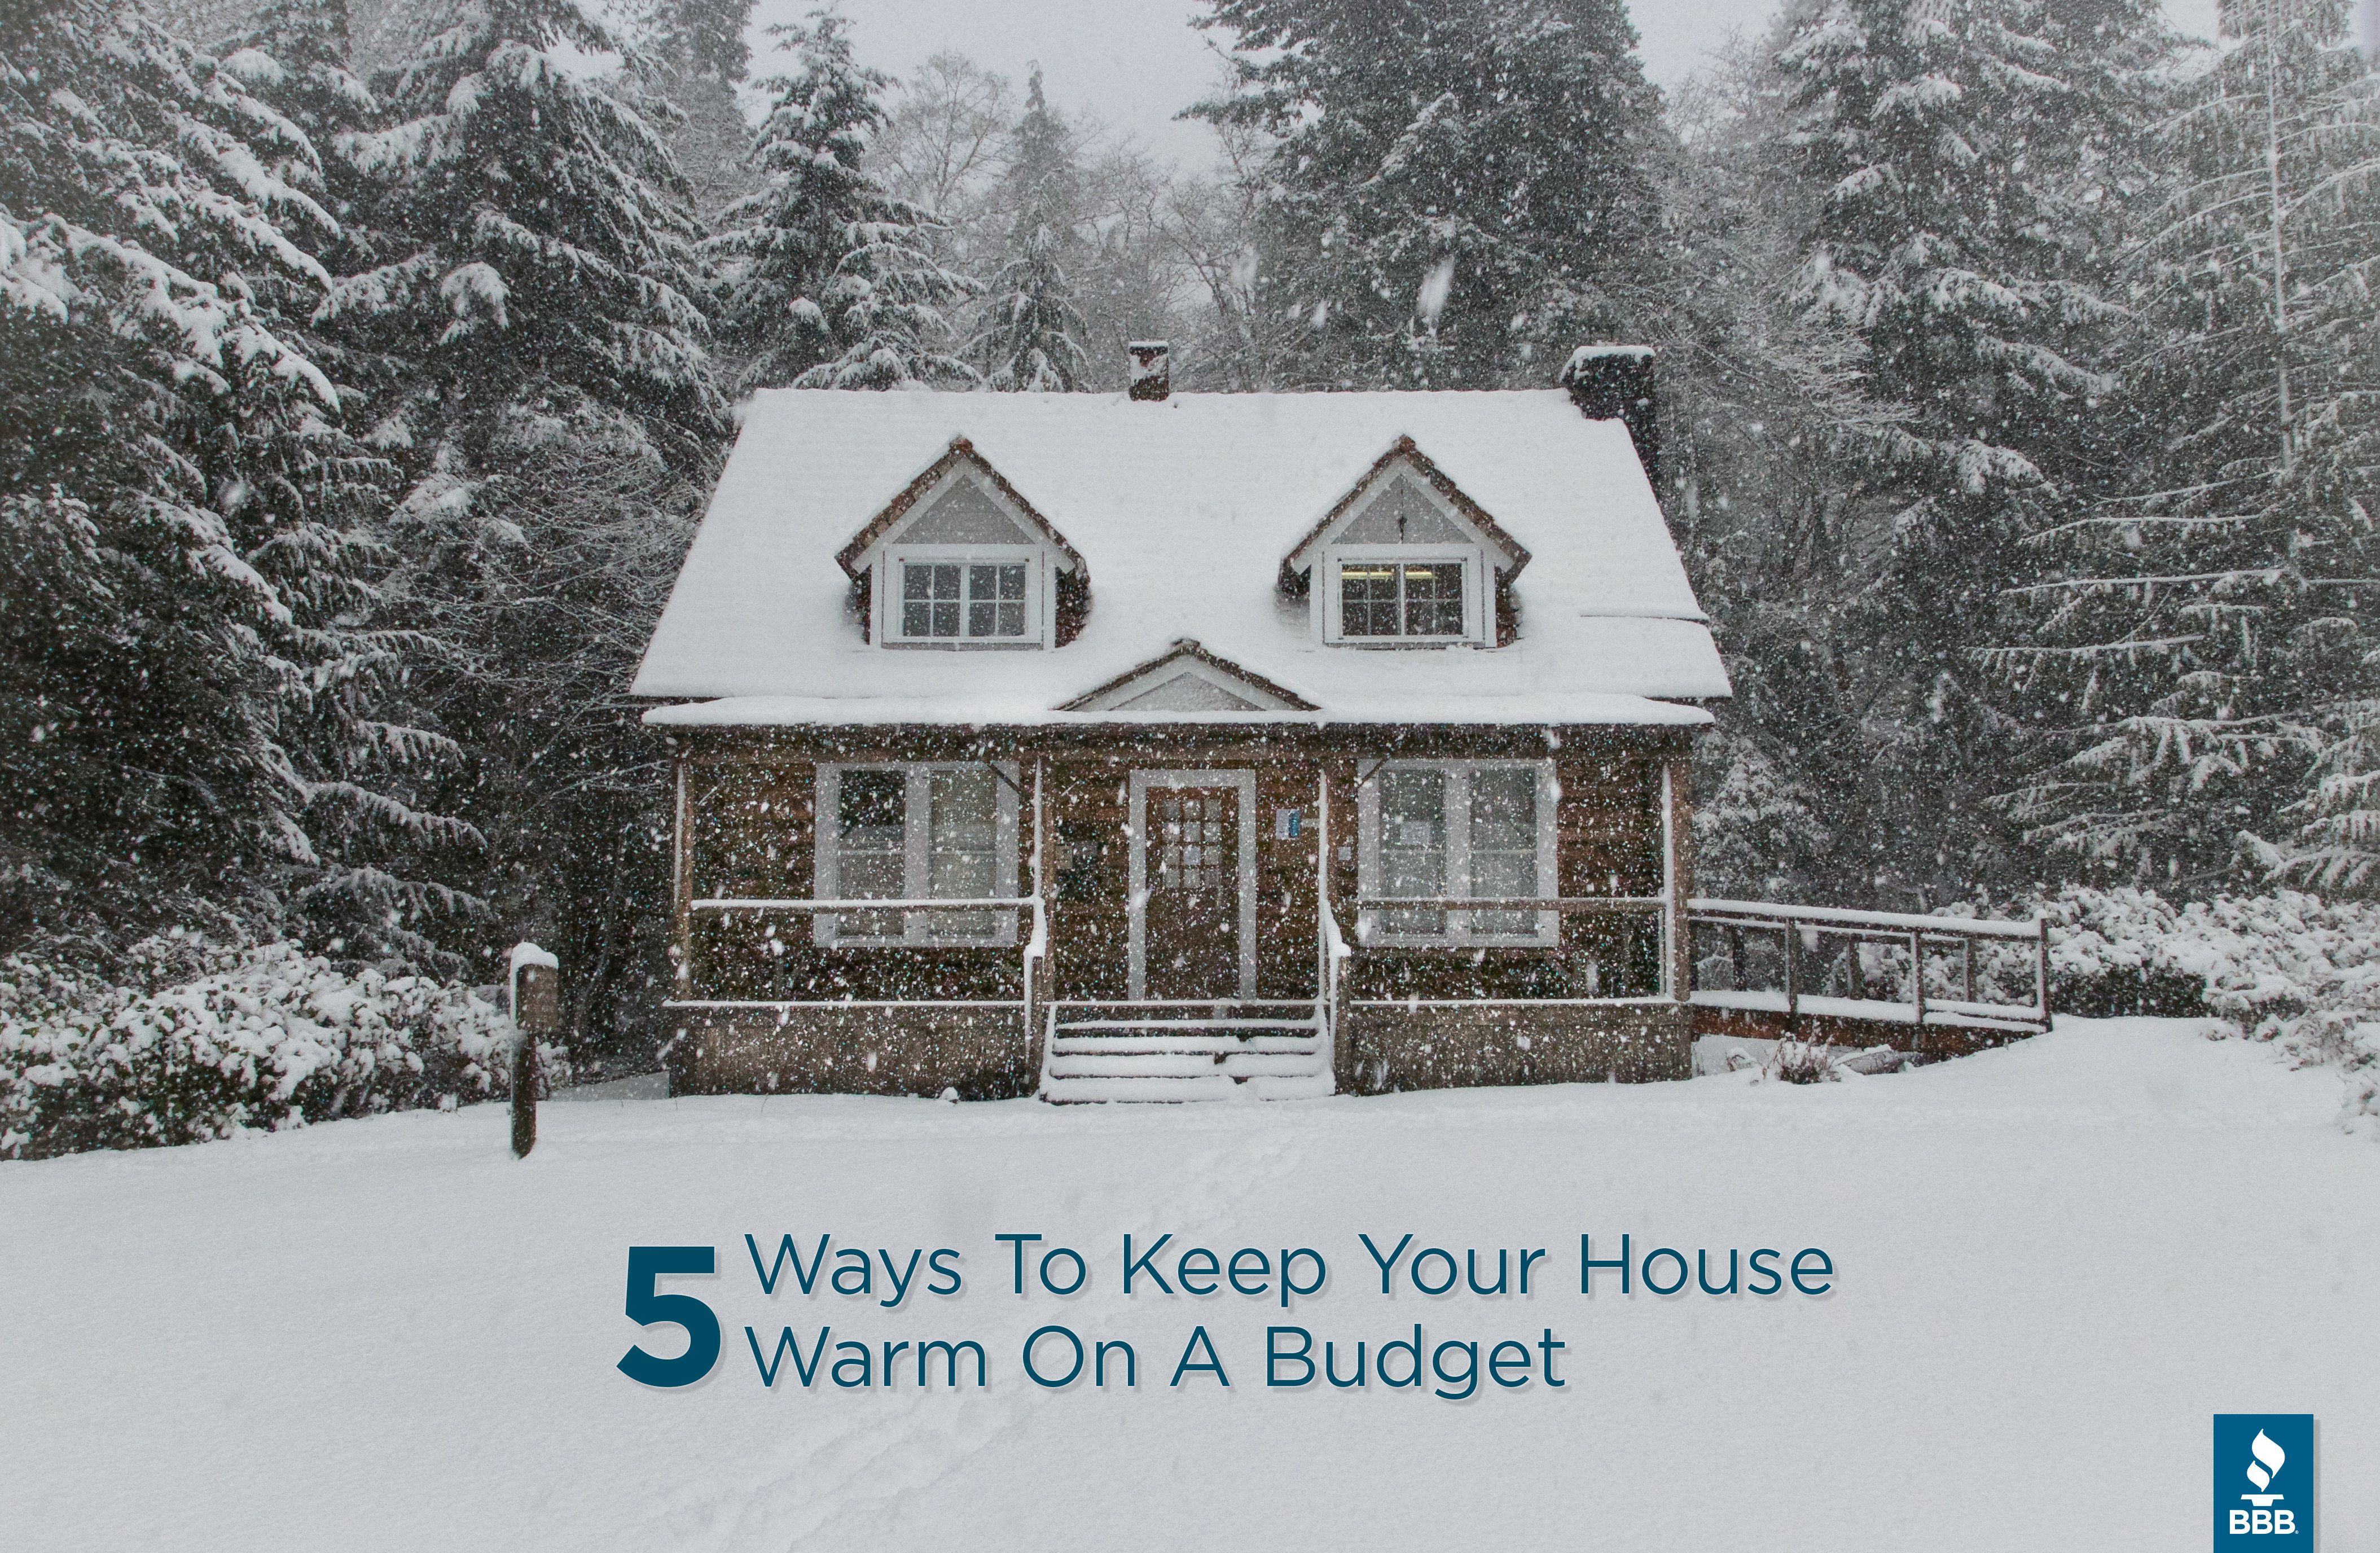 Five Tips For Keeping Your Home Warm On A Budget Winter House Cabins In The Woods Home Maintenance Checklist